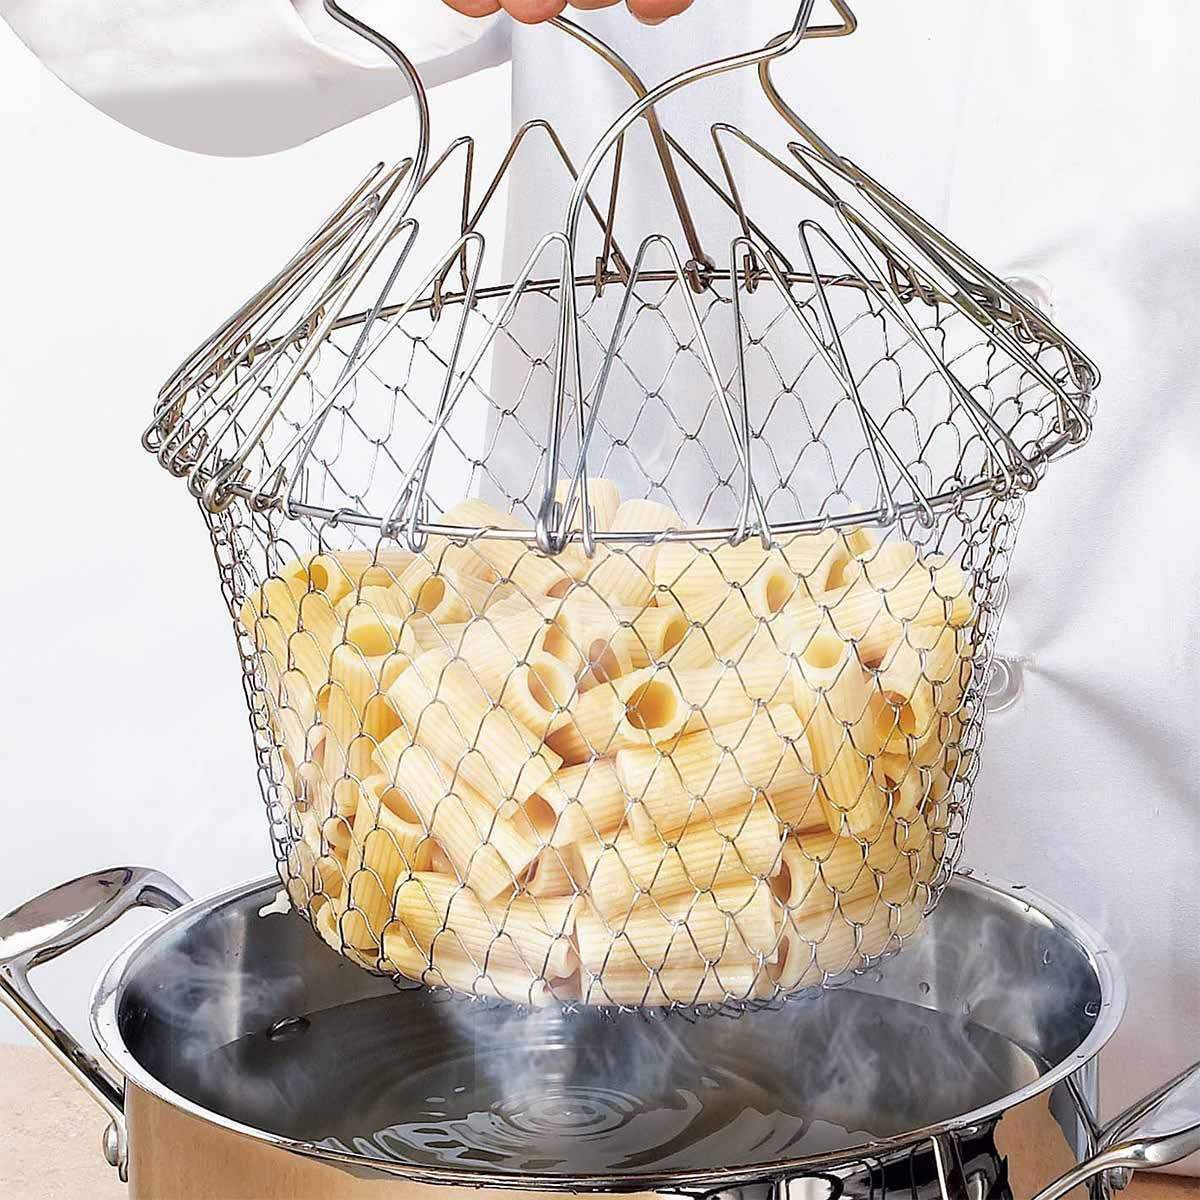 Costbuys  1pcs Foldable Steam Rinse Strain Fry French Chef Basket Magic Basket Mesh Basket Strainer Net Kitchen Cooking Tool - C